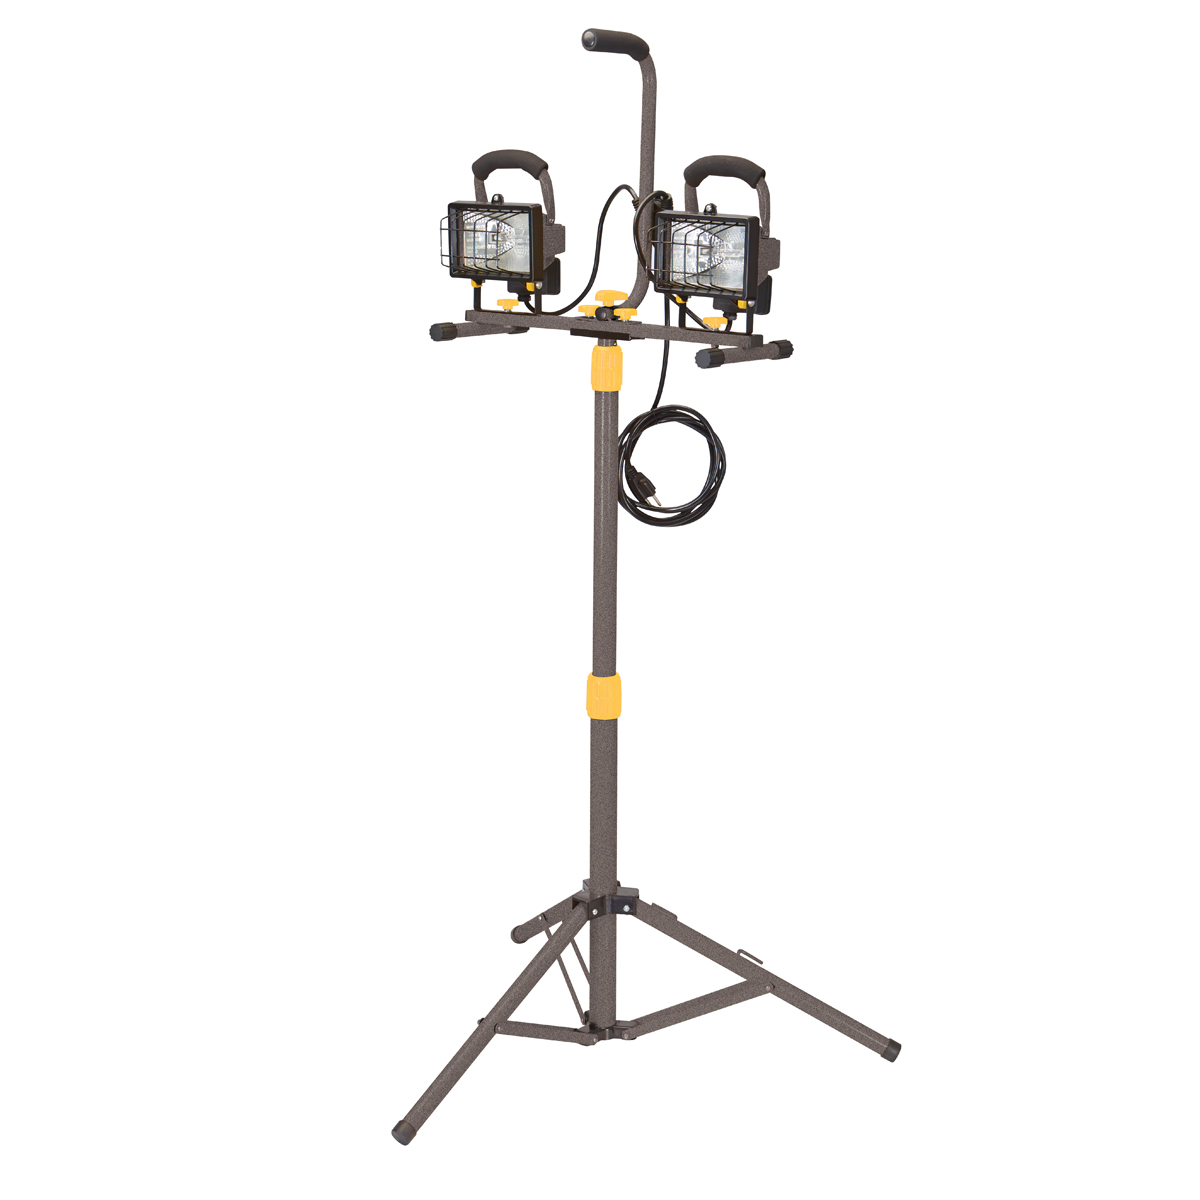 The Portable Halogen Shop Light from Harbor Freight Tools delivers watts of bright light to your workspace when handling a variety of jobs. Indoors or outdoors, this item is easily adjustable to degrees so you can achieve the ideal lighting positon while painting, plumbing, remodeling, and more.